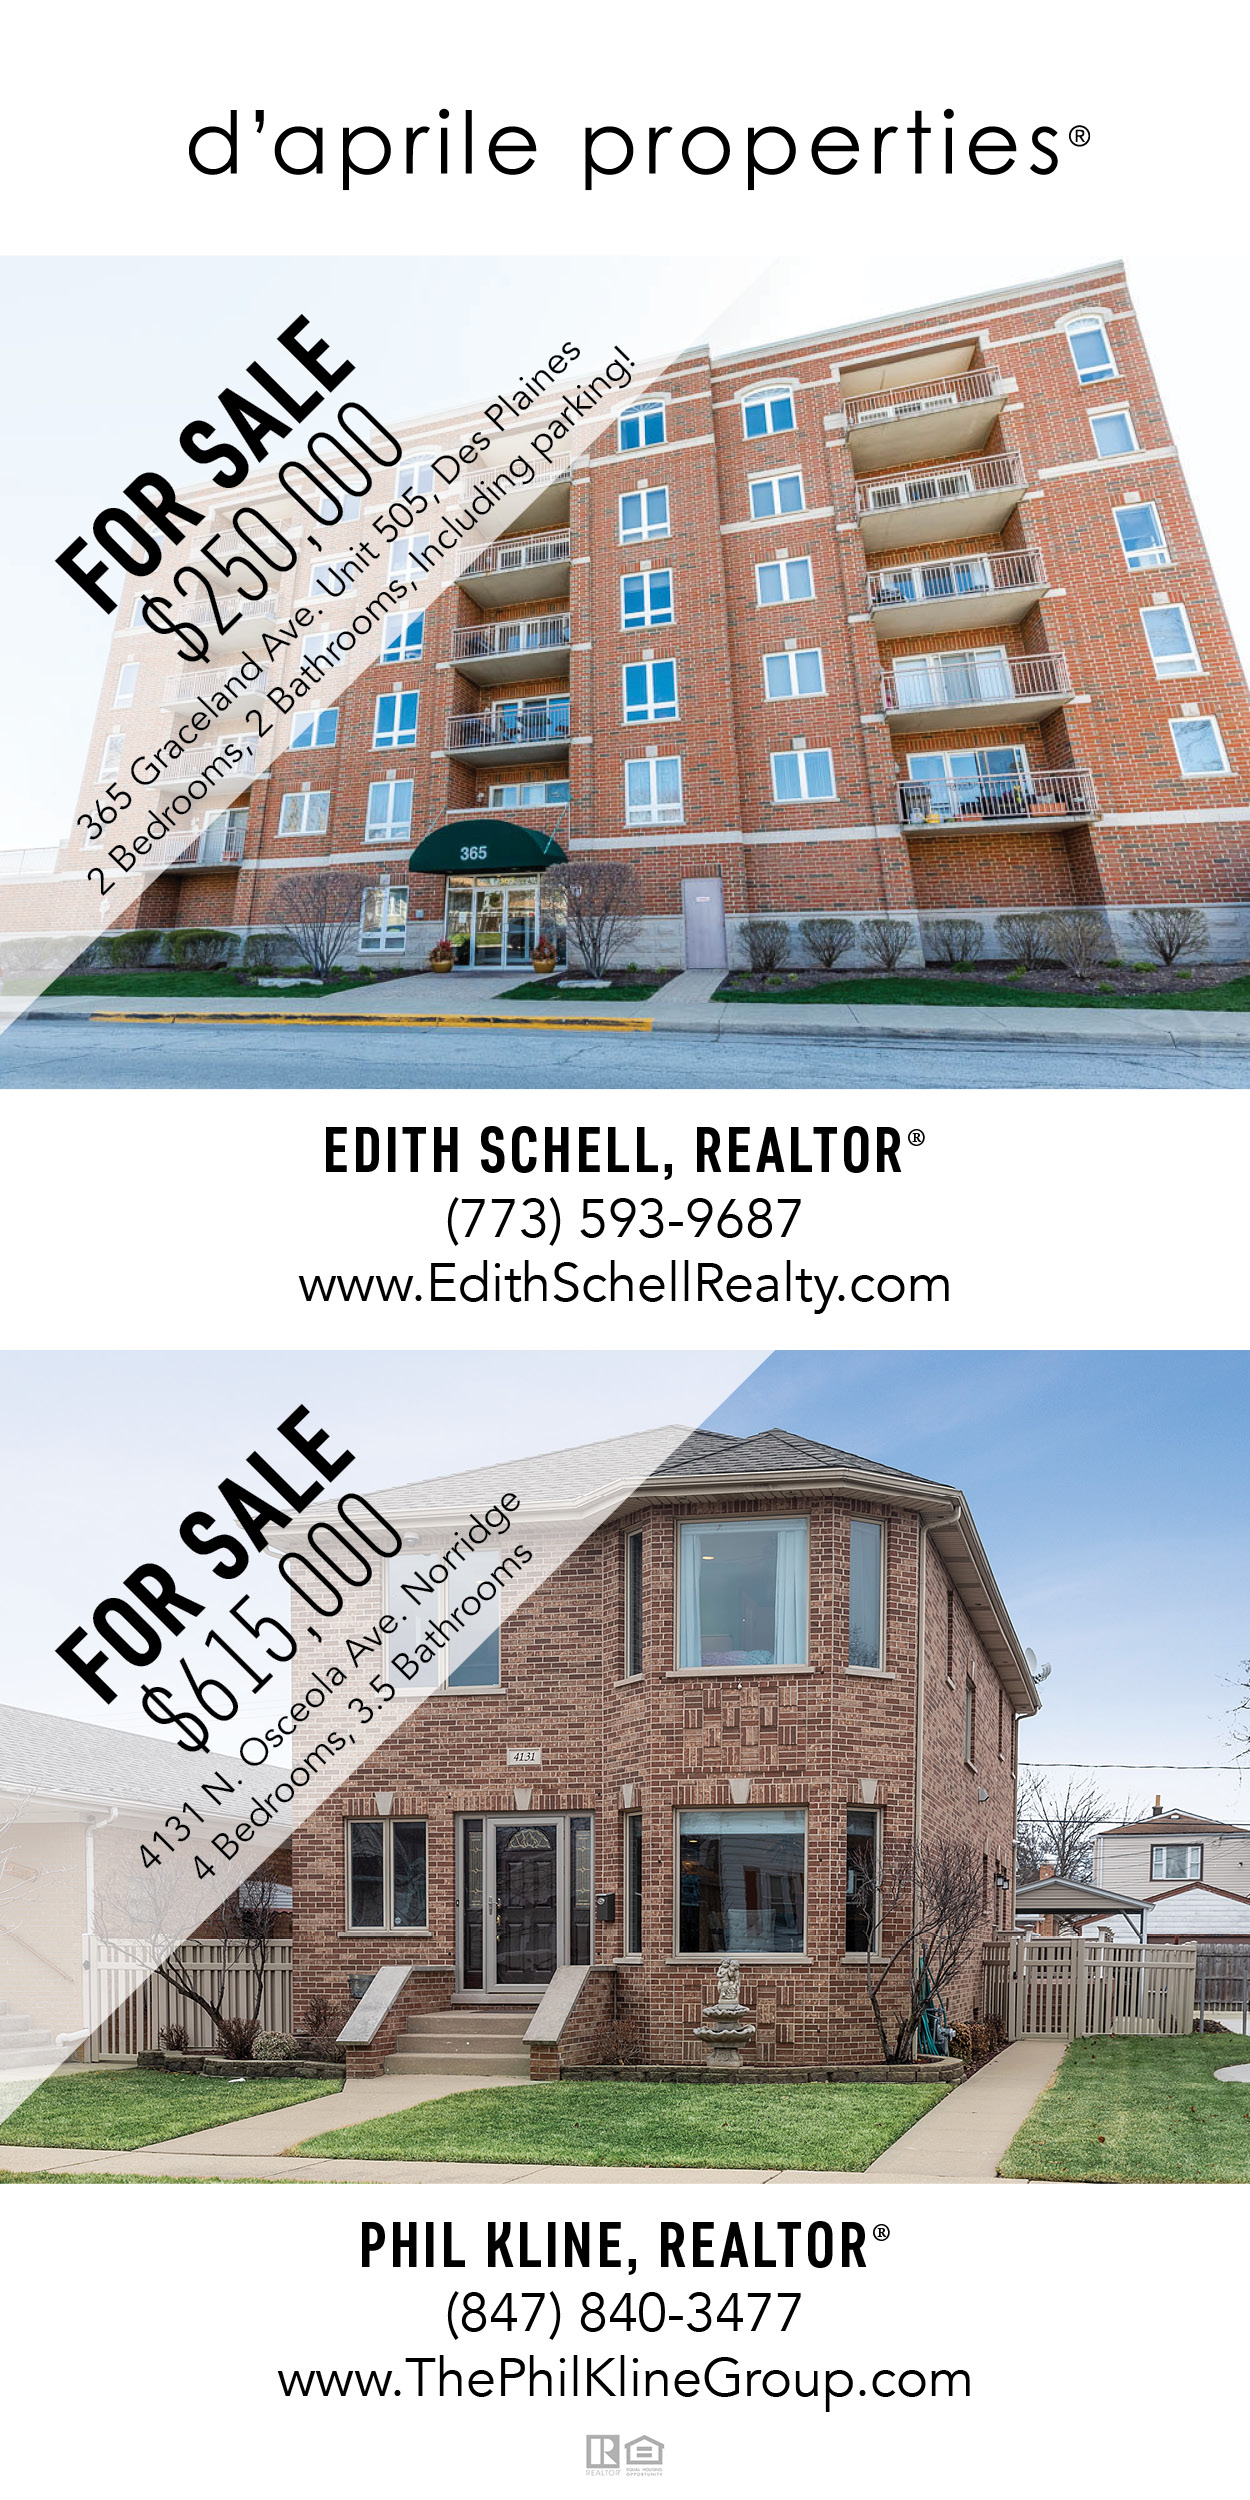 edith schell realty